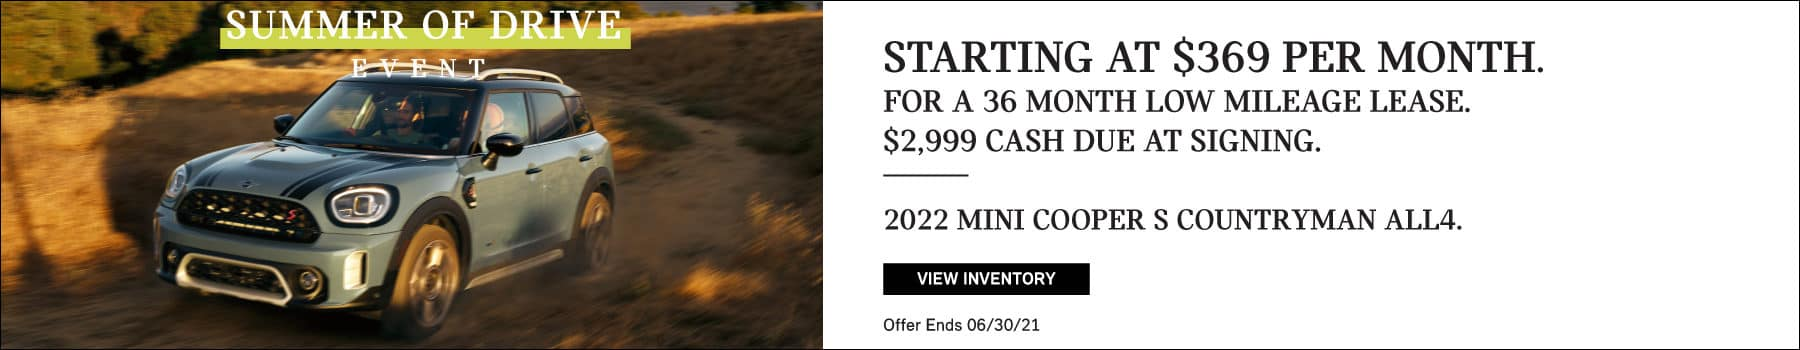 LEASE A 2022 MINI COOPER S COUNTRYMAN ALL4. STARTING AT $369/MONTH FOR A 36-MONTH LOW-MILEAGE LEASE. $2,999 CASH DUE AT SIGNING. Valid through 06/30/21. Click to view inventory. See dealer for full details. Image shows a blue and black MINI Cooper S Countryman ALL4 driving down a dirt road near the ocean. MINIs Summer of Drive logo is placed over the image.